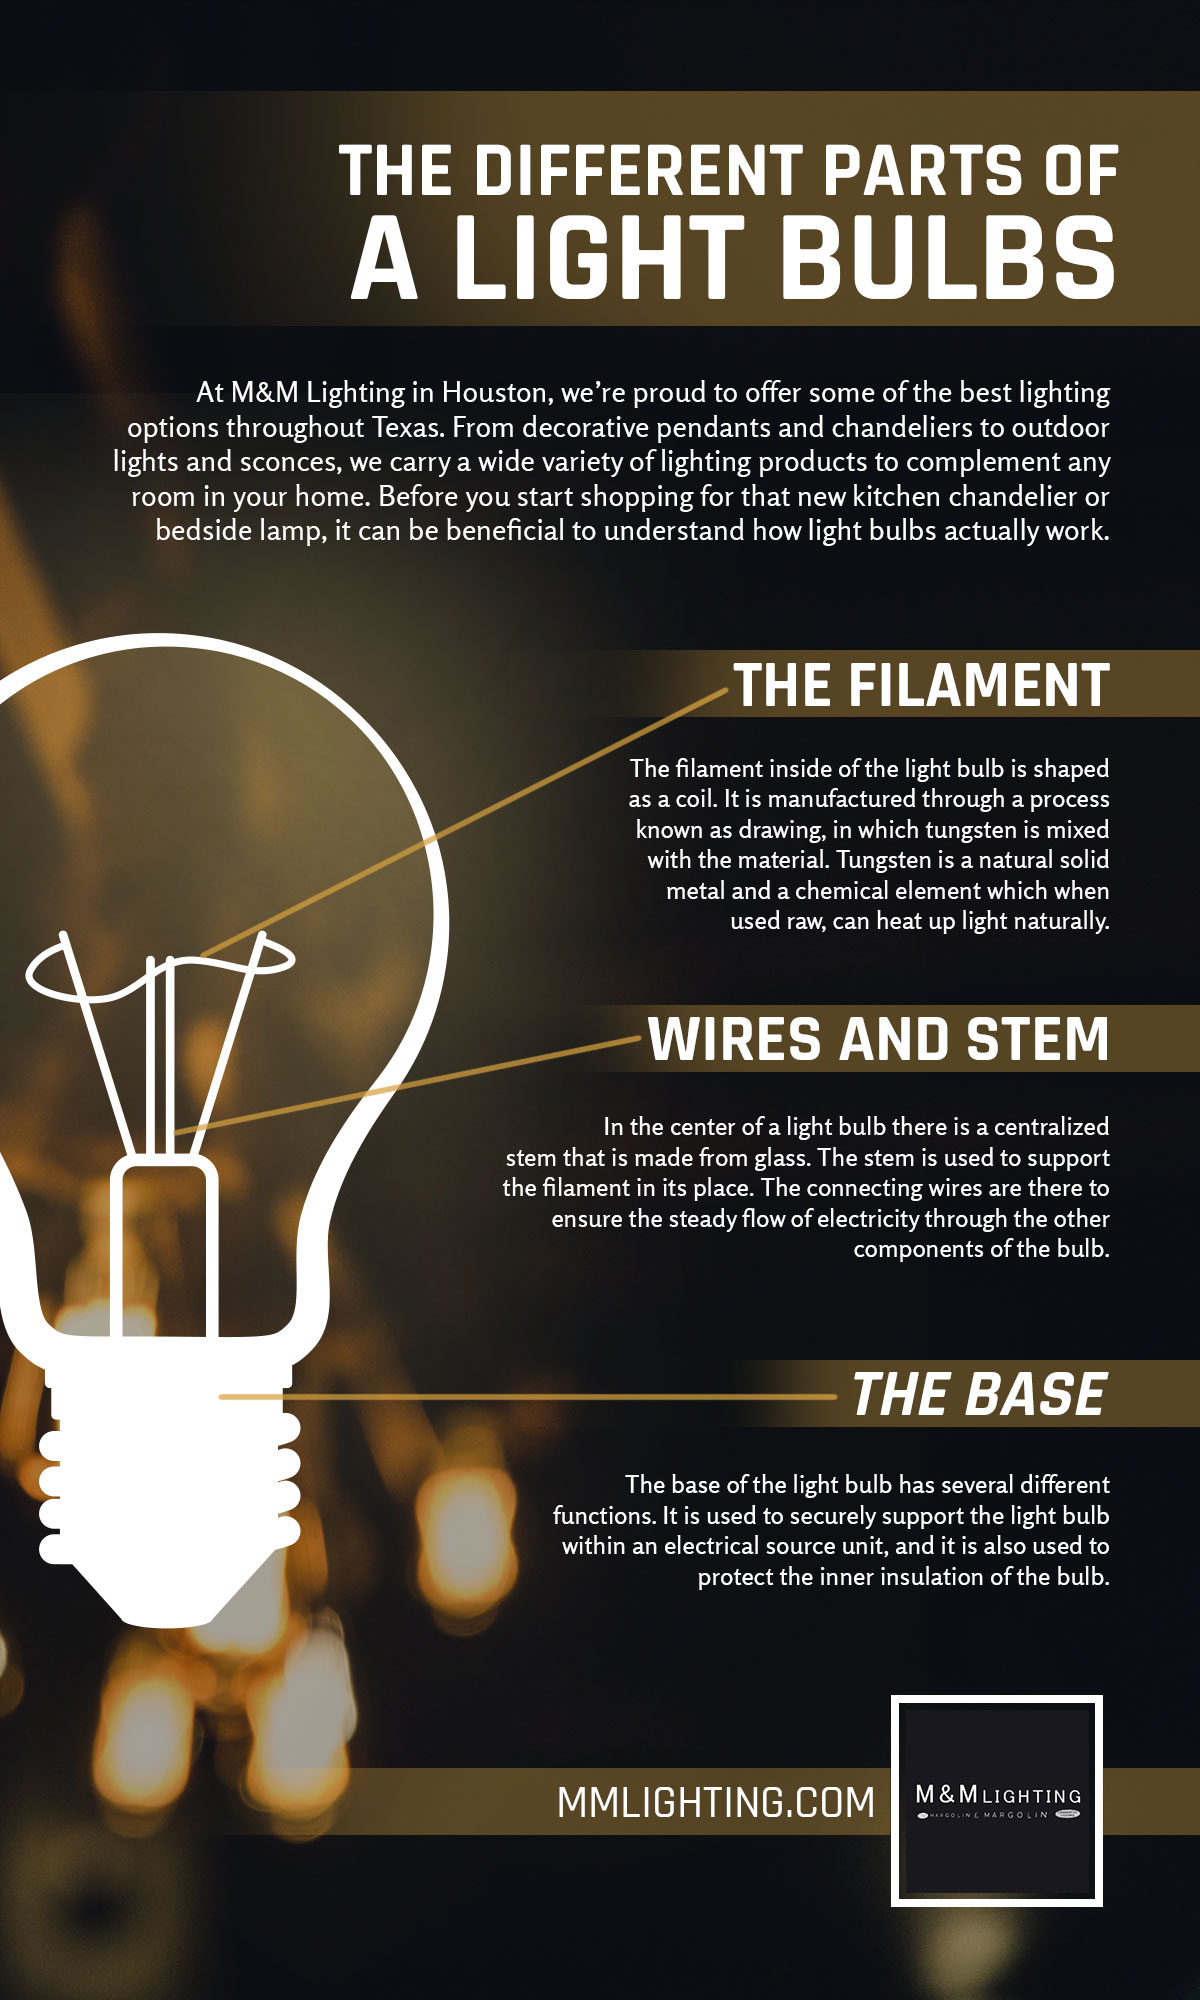 Lighting Showroom Houston The Different Parts Of A Light Bulbs Wiring Bedside Lamp Understanding Their History